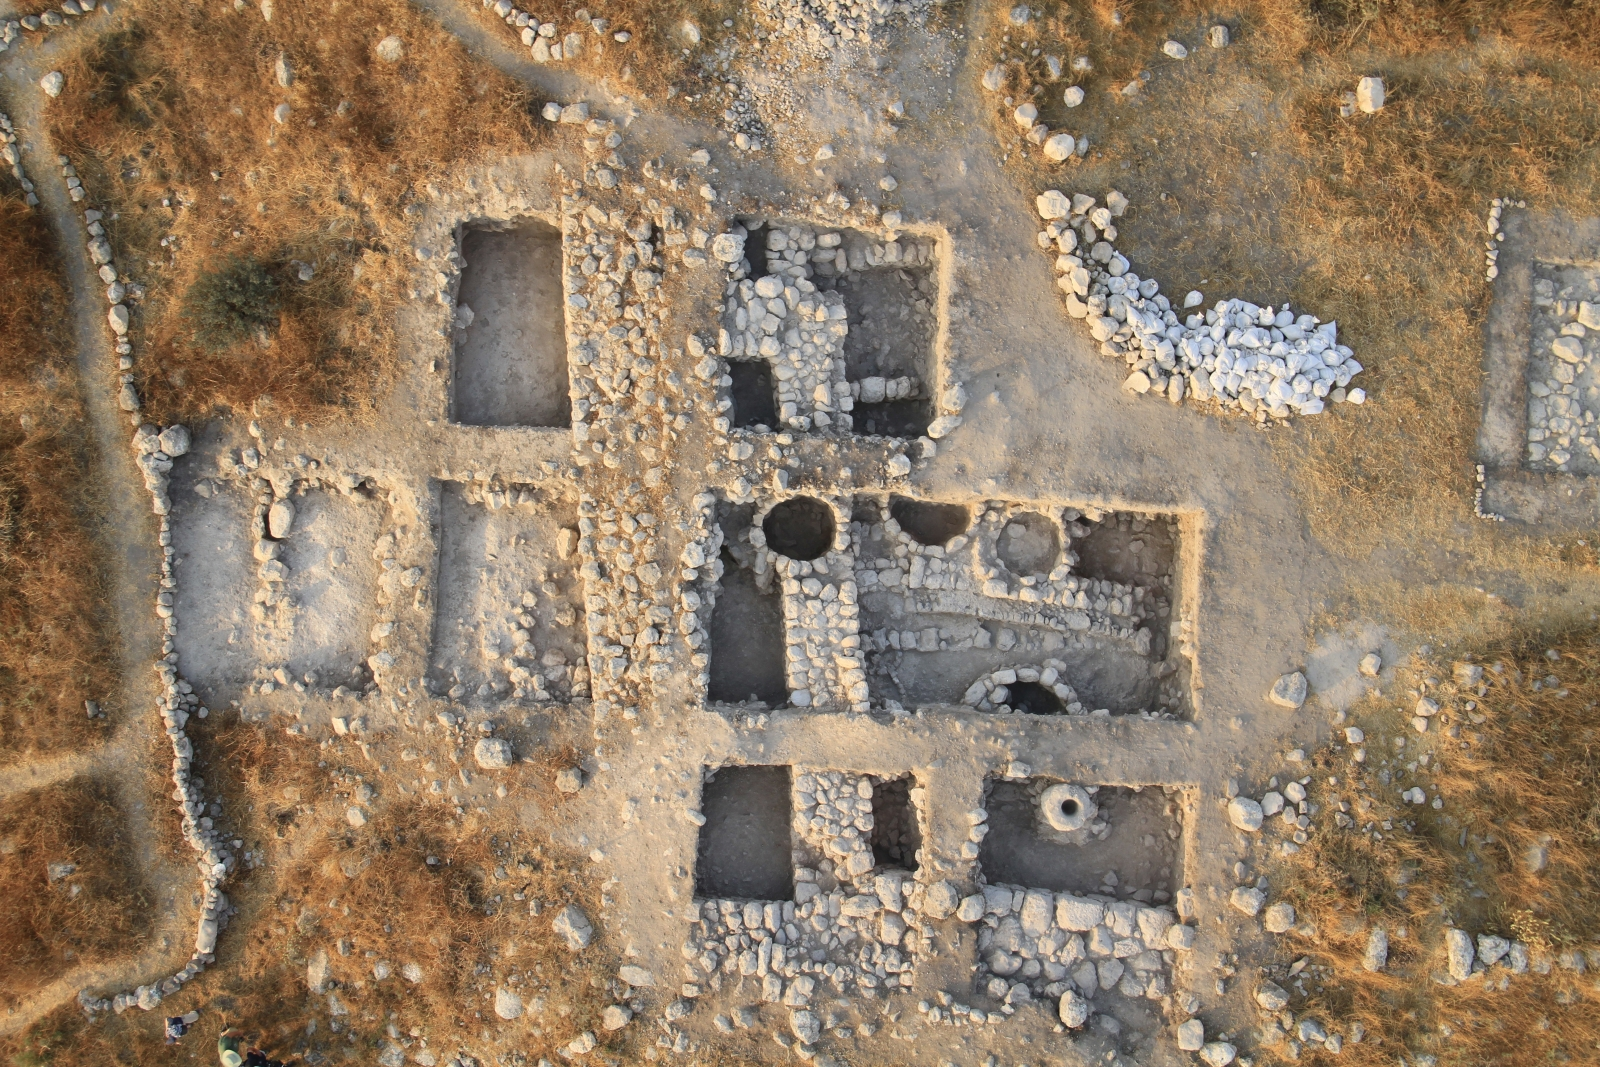 Aerial shot of the fortifications found at Tel Burna. Archaeologists believe this could be the site of Libnah, which is mentioned in the Bible